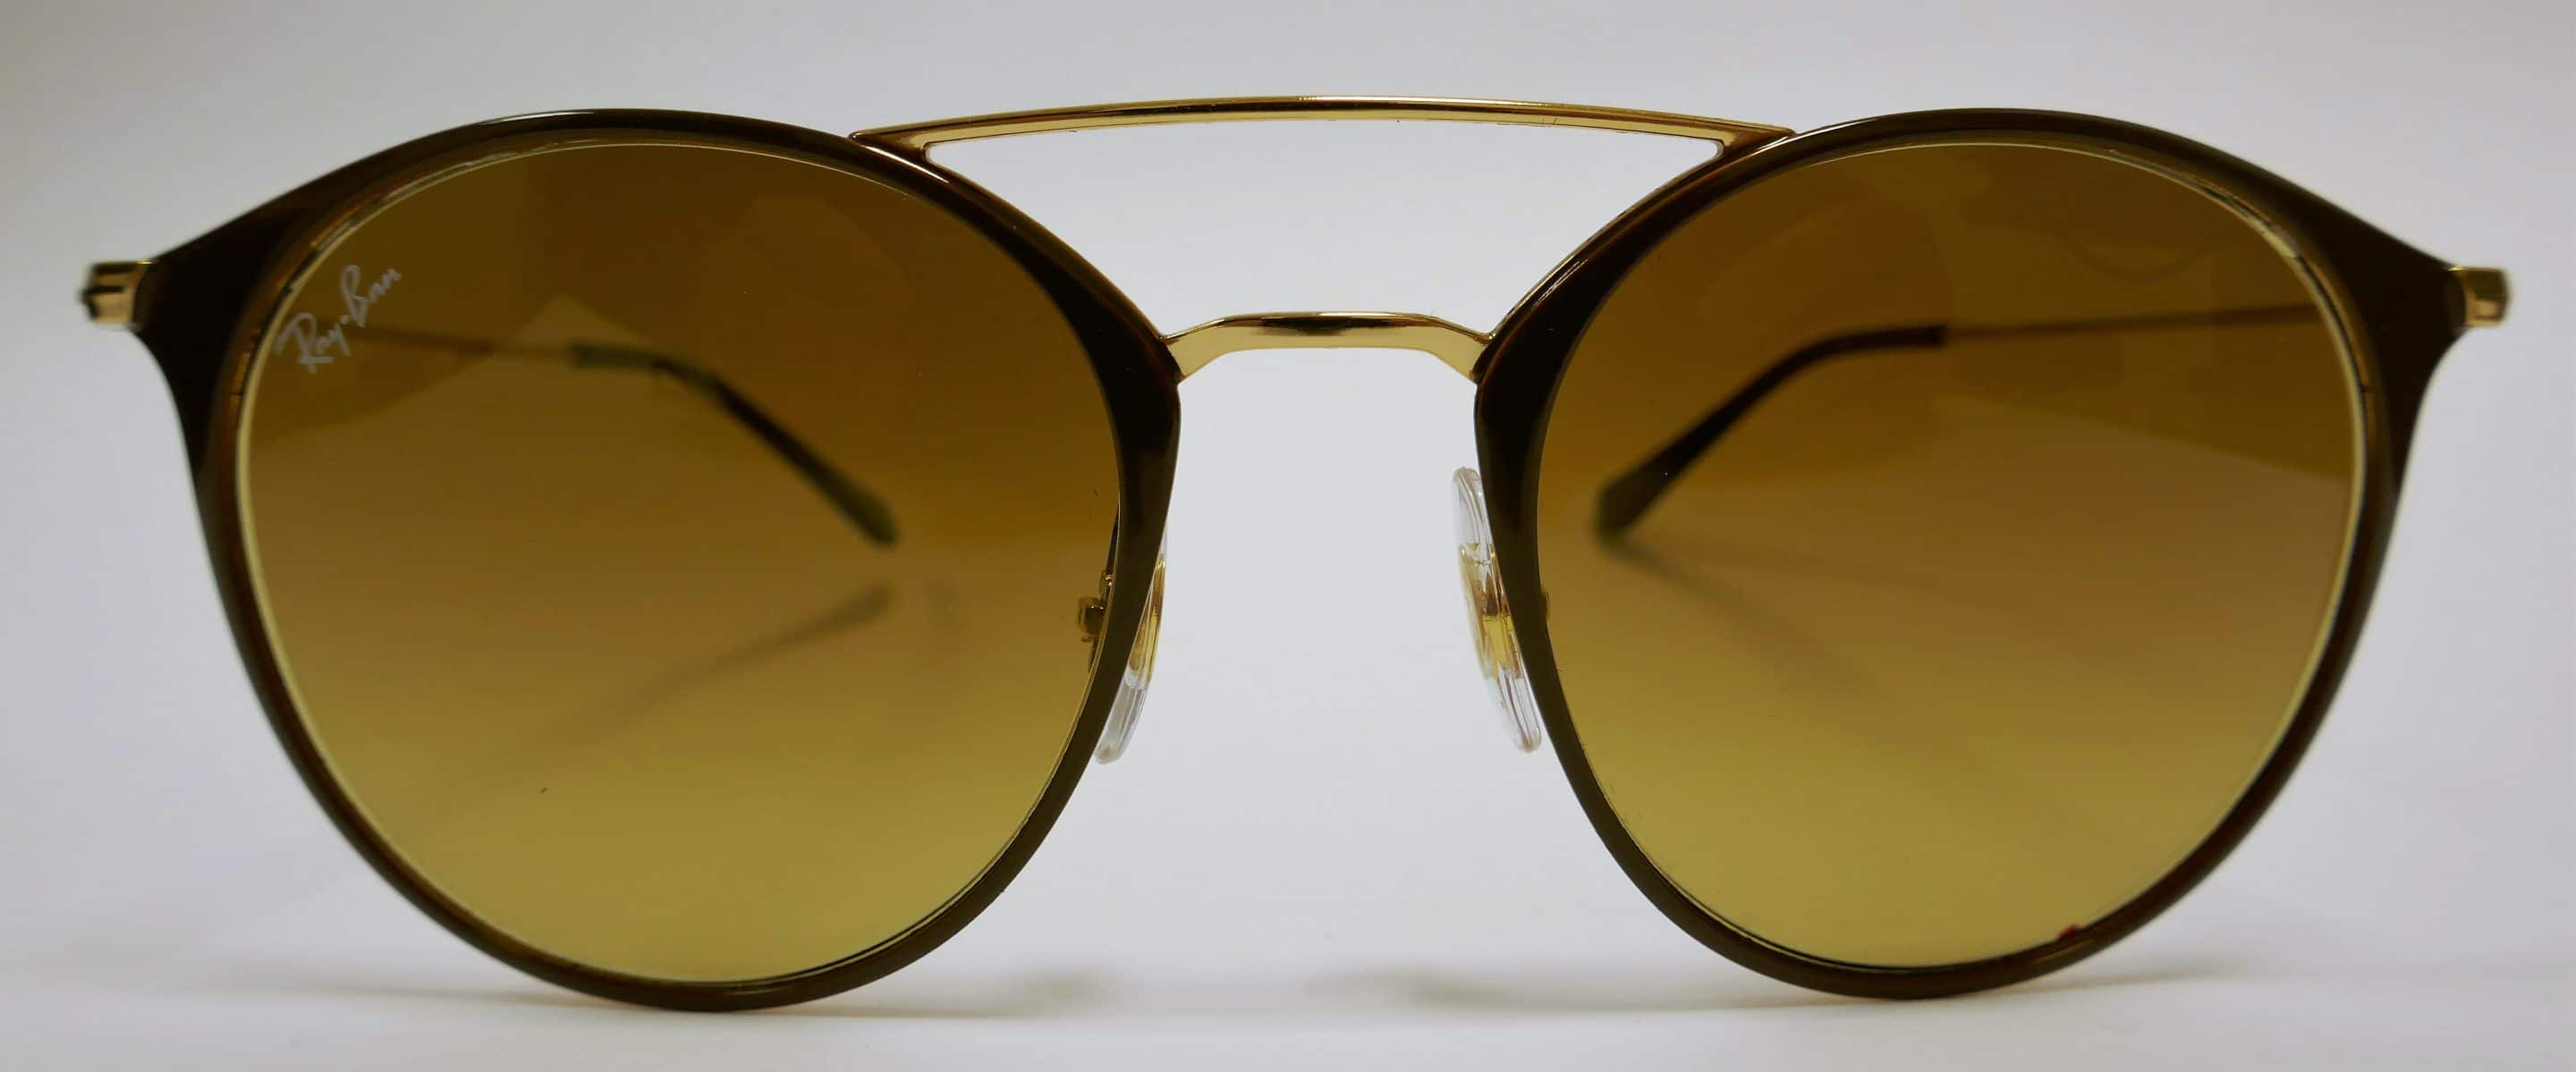 lunettes ray-ban progressives courtillers